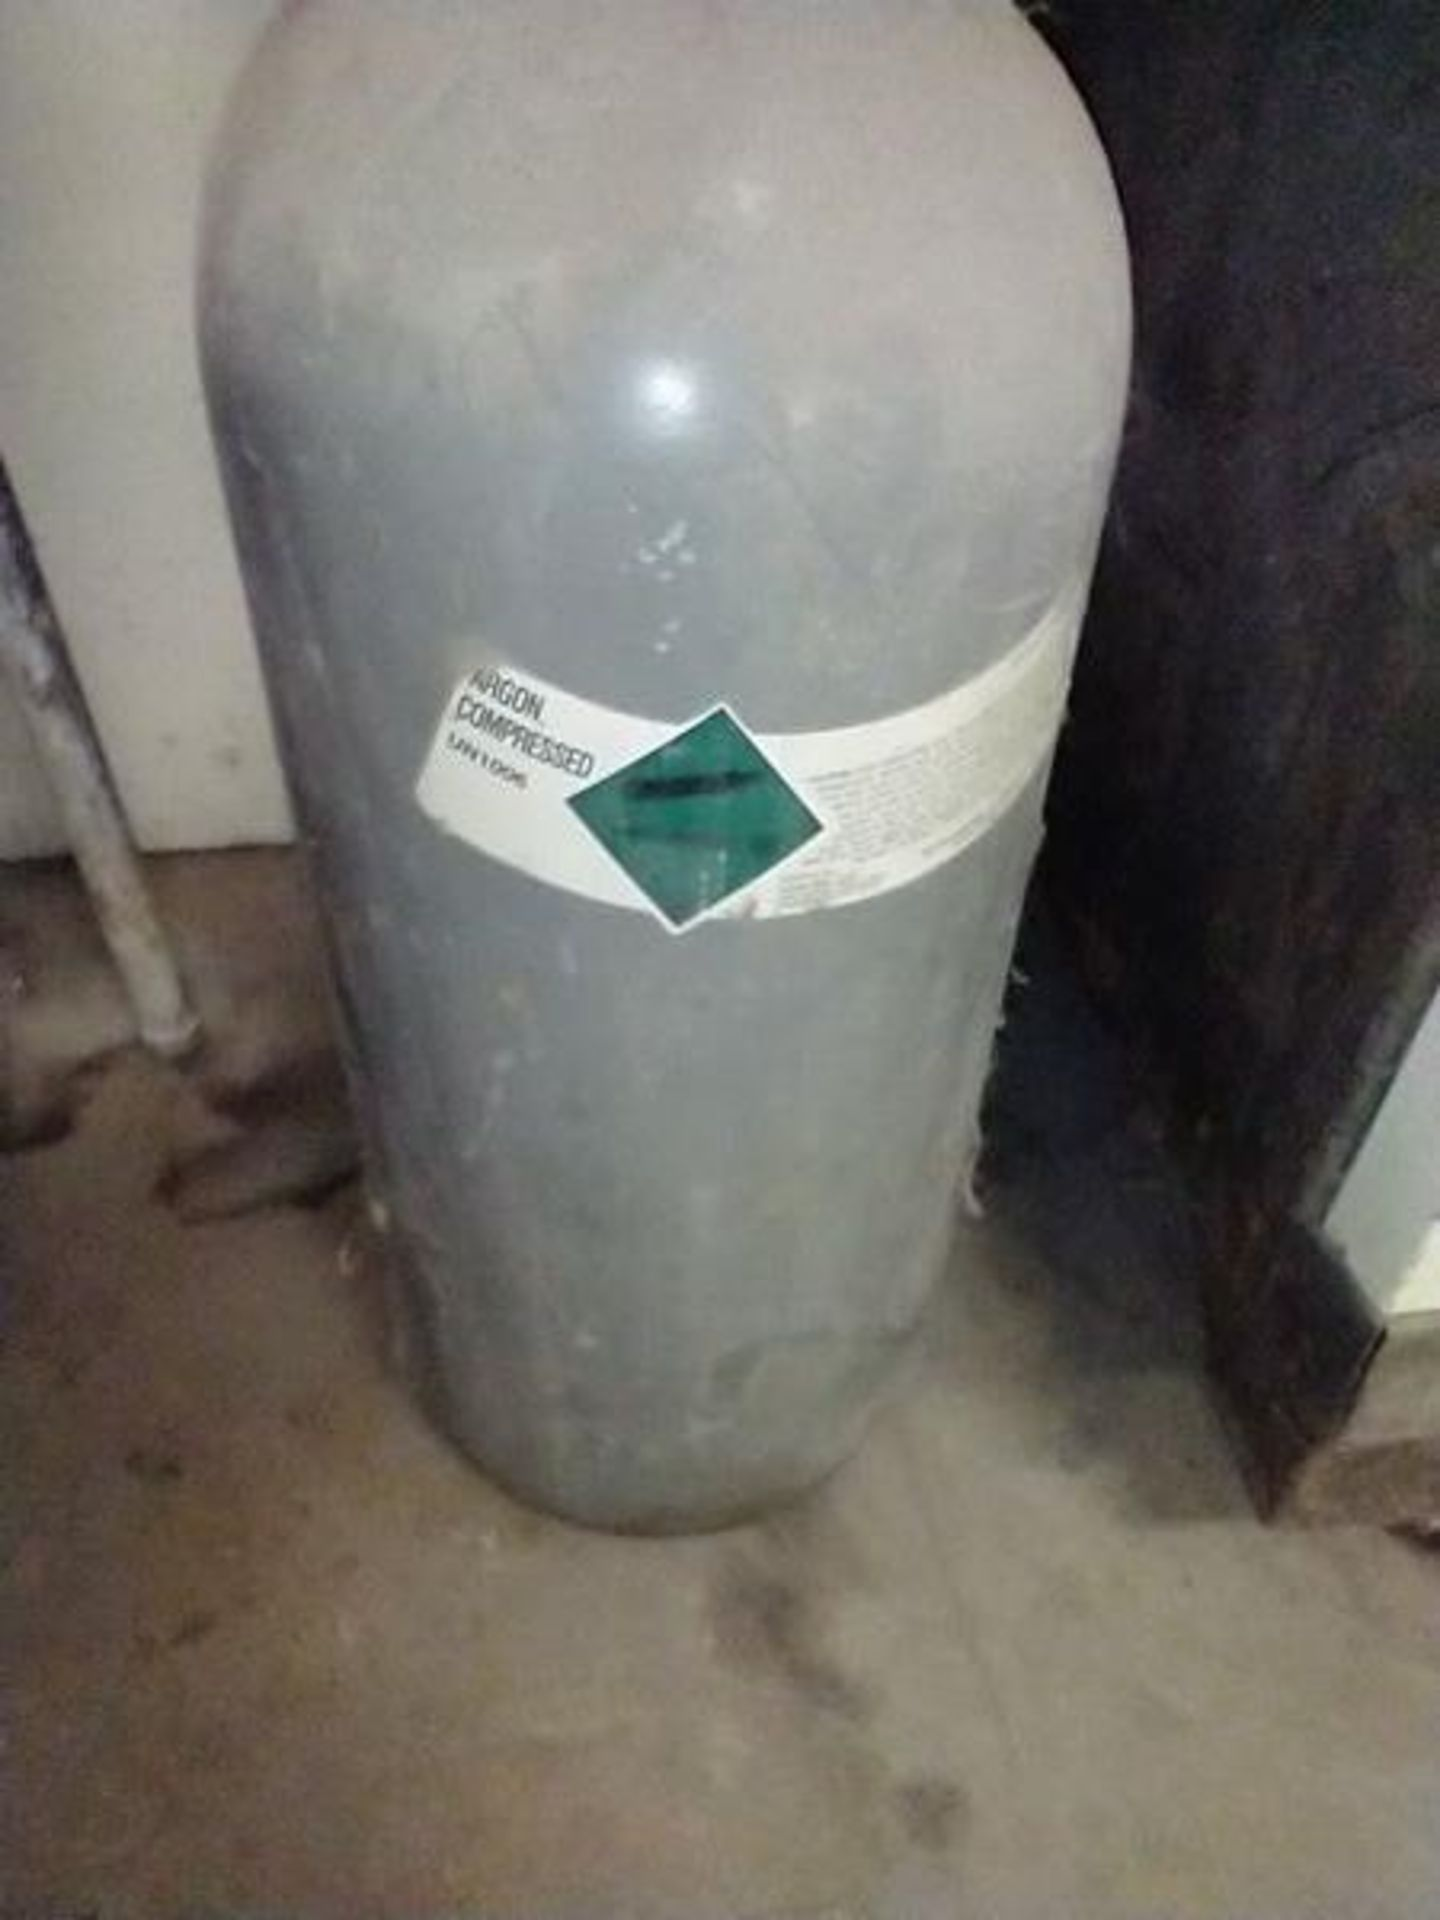 TANKS - GAS AND ARGON - WE DO NOT KNOW IF THESE TANKS CAN BE REFILLED - Image 4 of 4